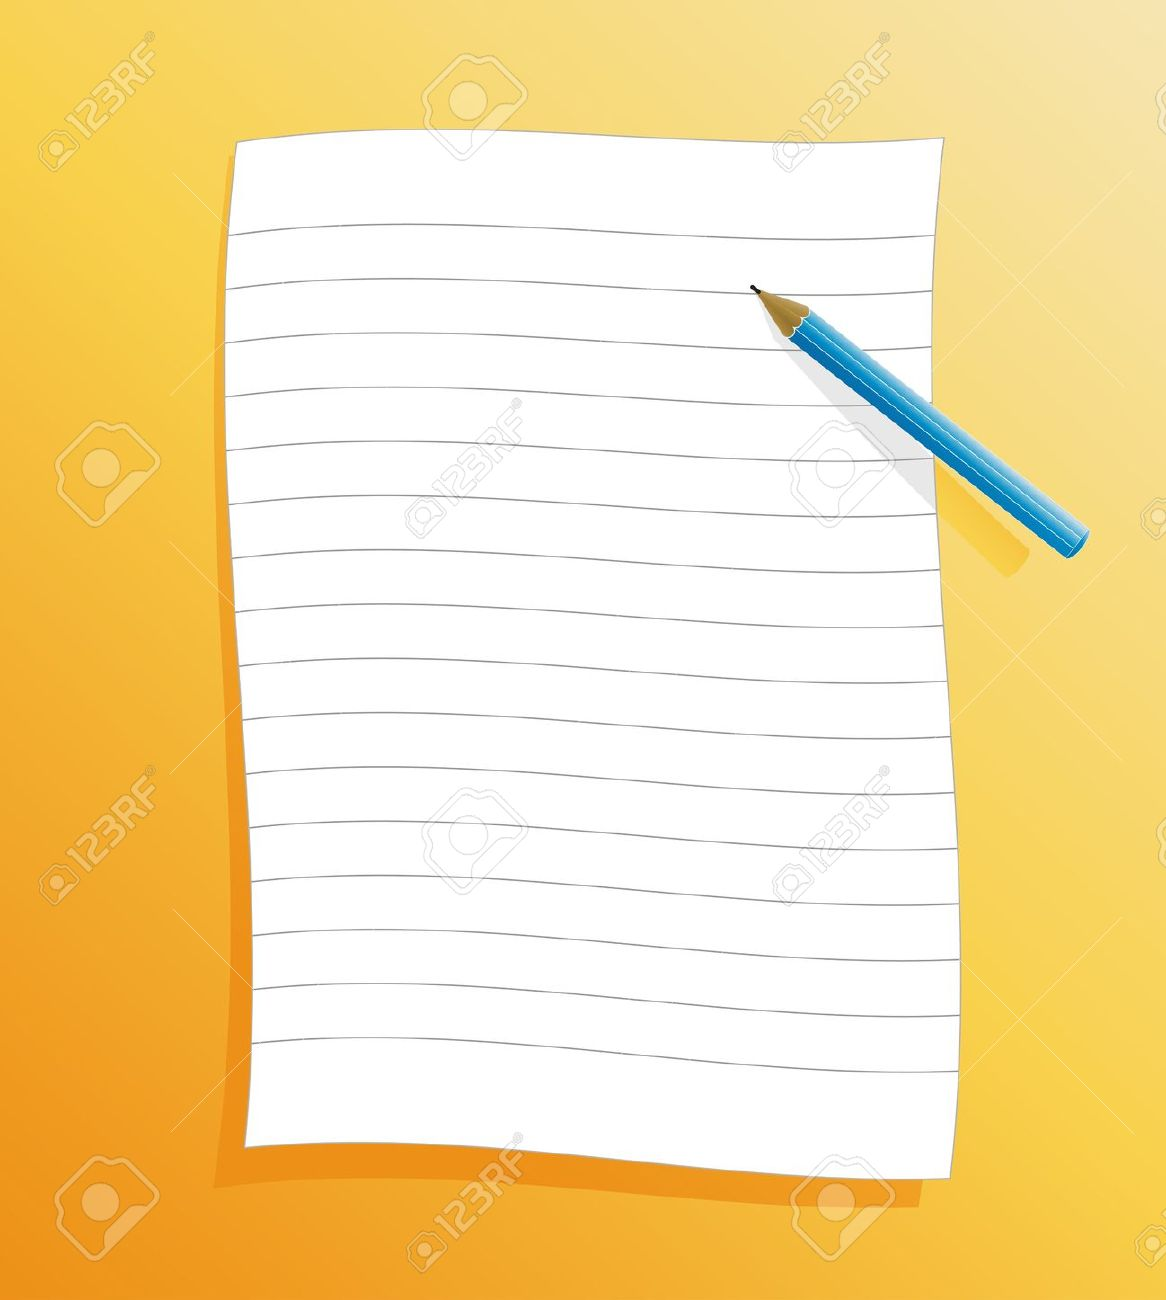 1166x1300 Paper Clipart Lined Paper Pencil How To Write A Business Proposal